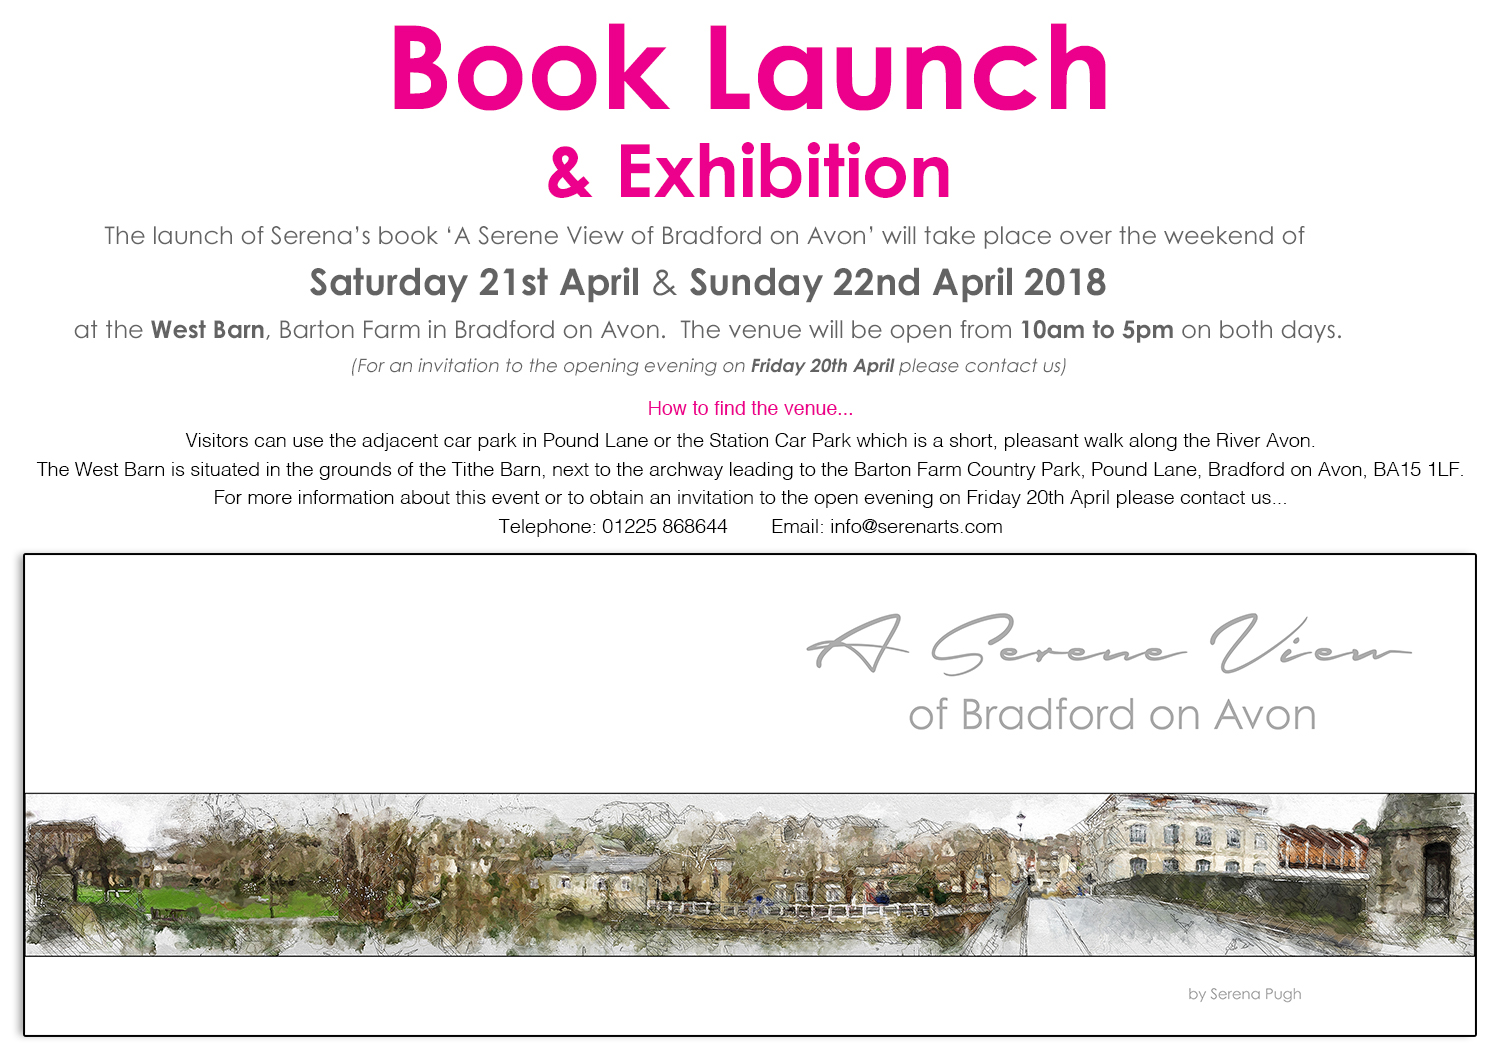 Book Launch & Exhibition